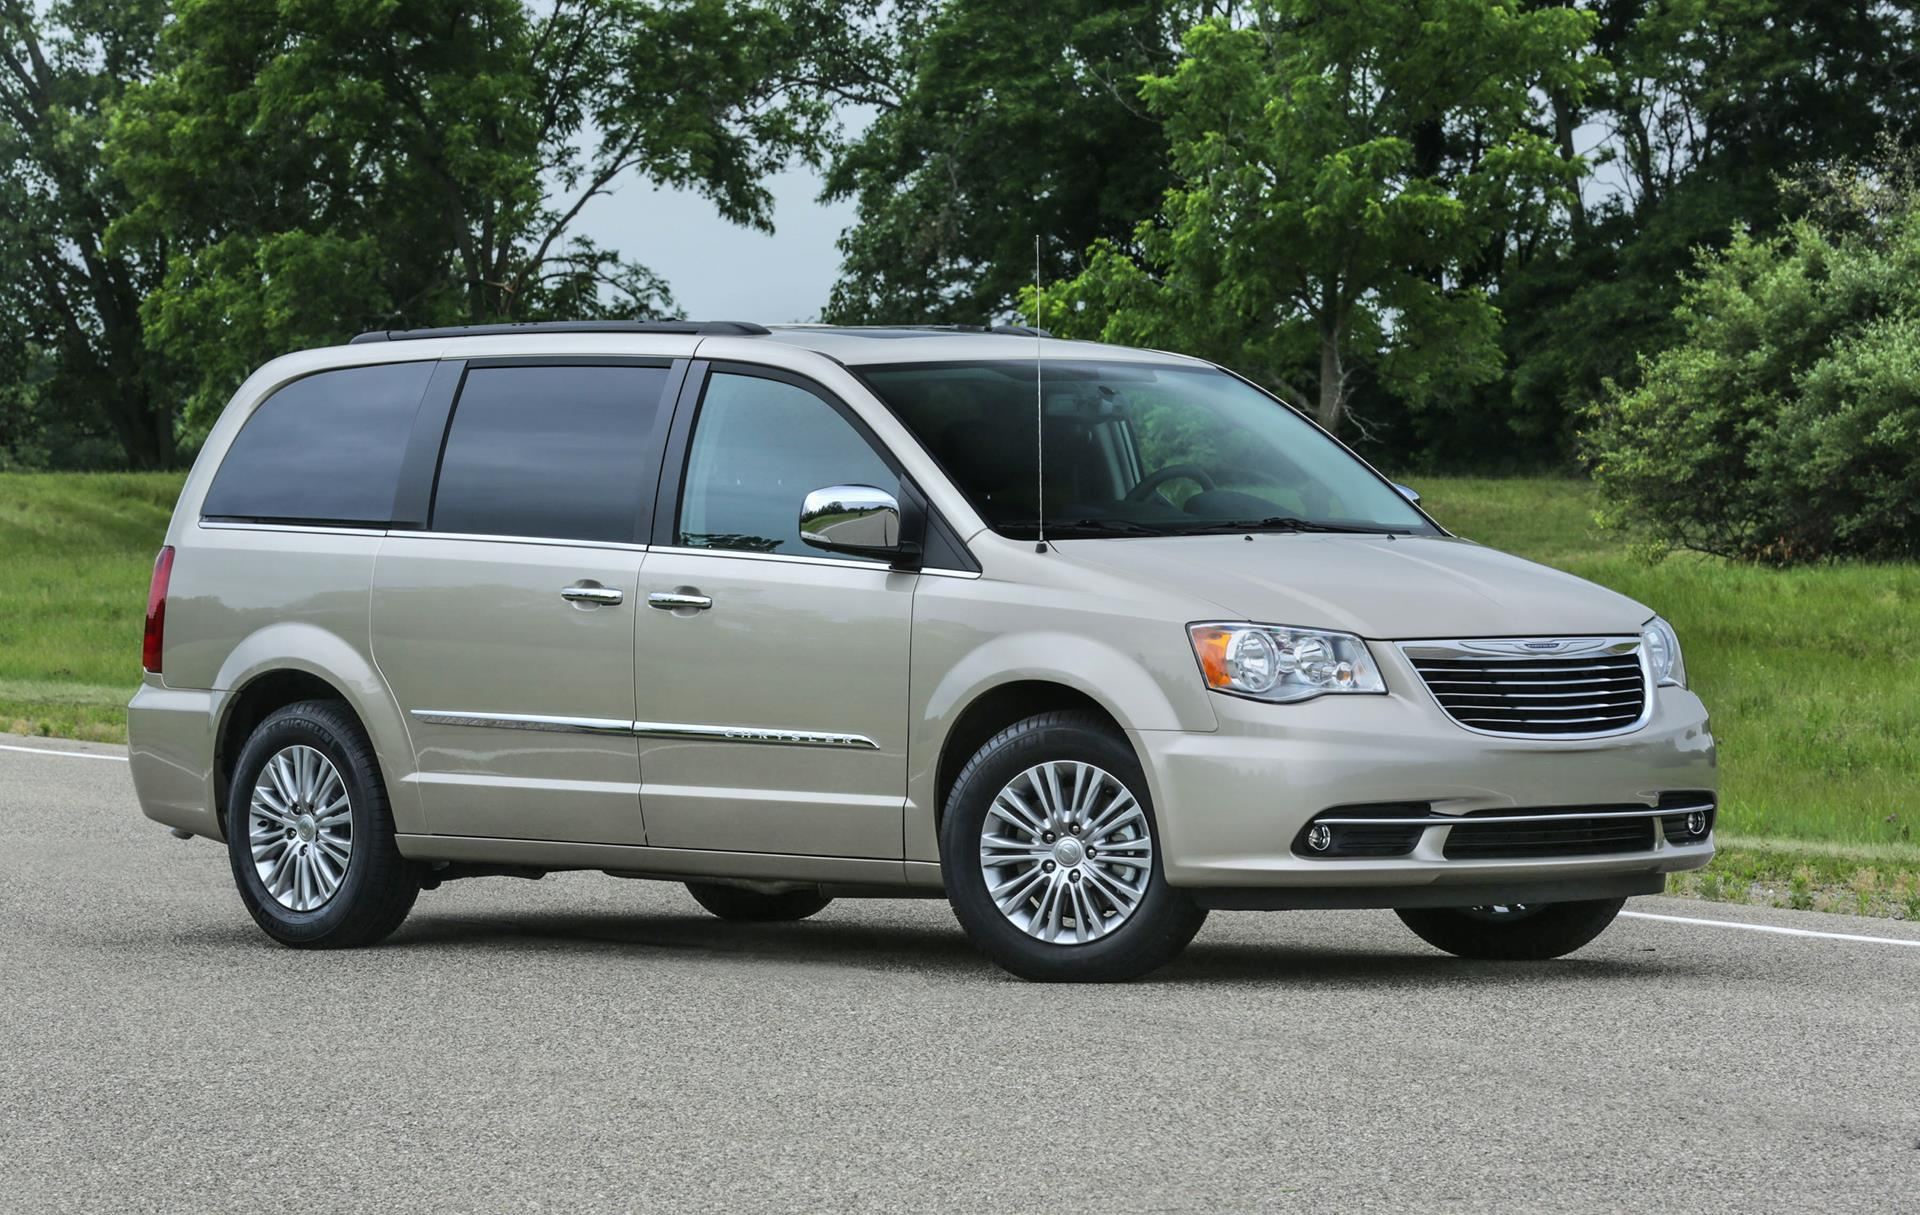 town sale commercial van mini details country inventory touring for chrysler used fwd